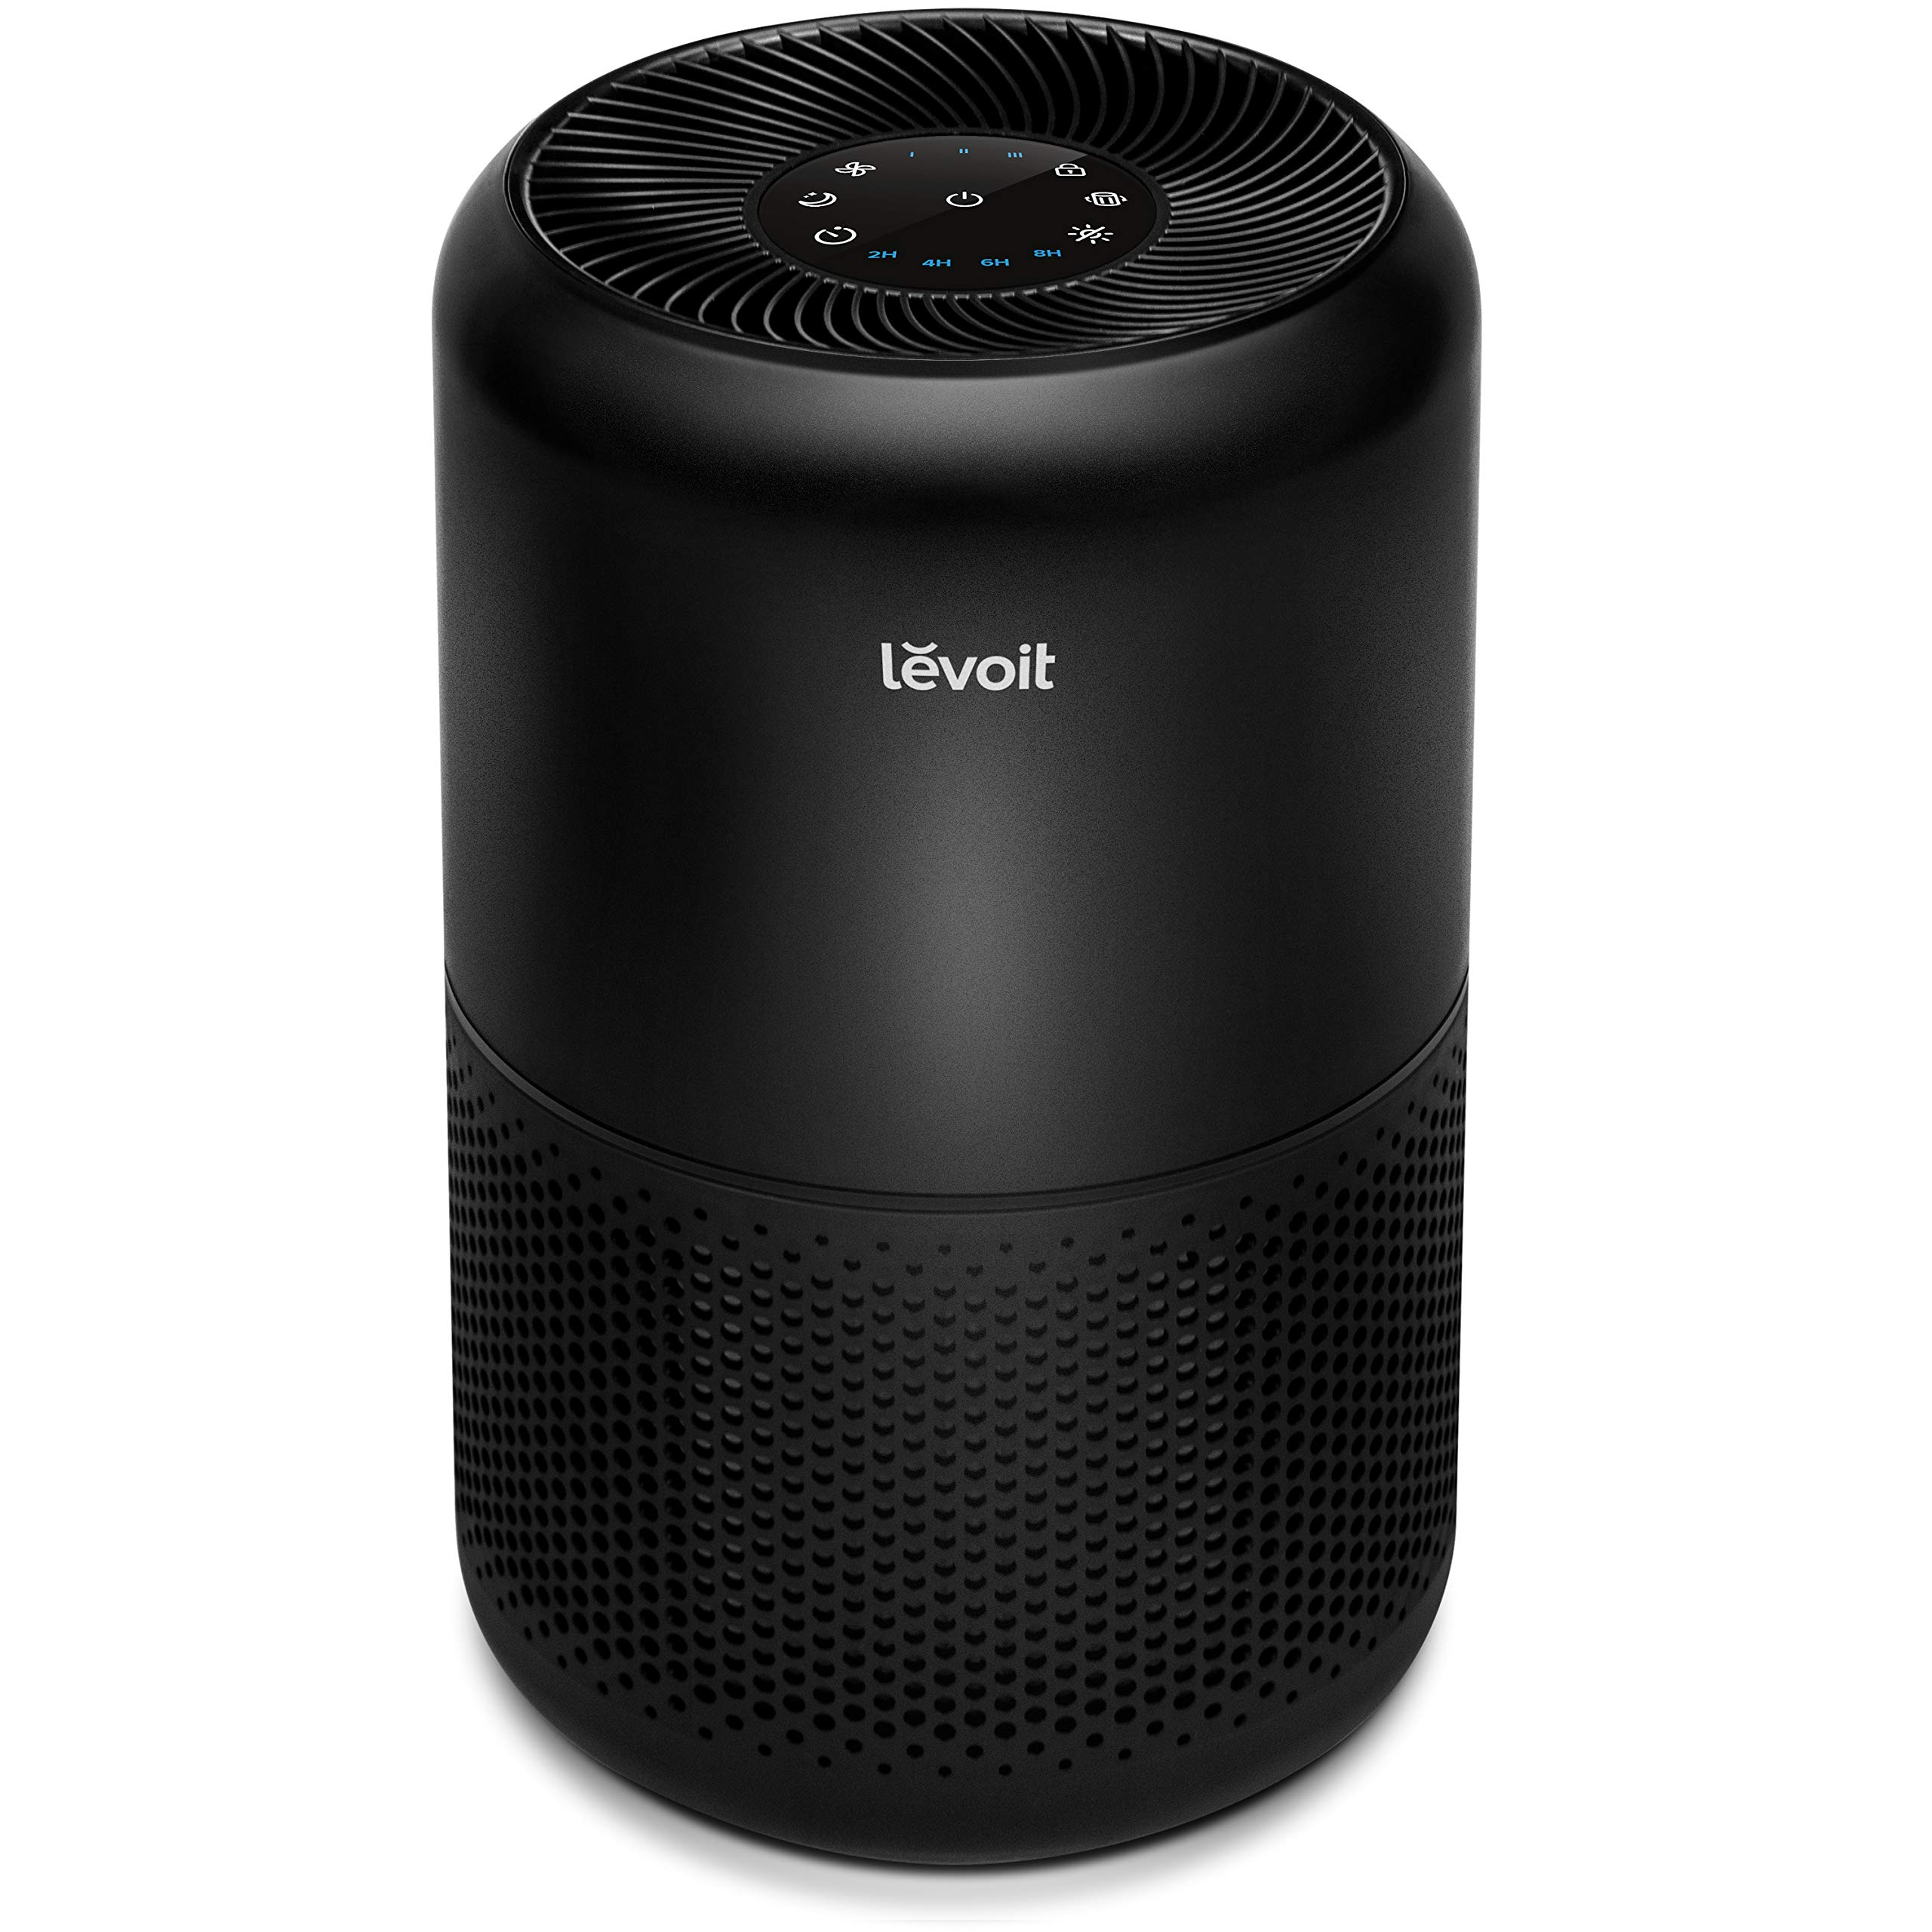 LEVOIT Air Purifiers for Home Allergies and Pets Hair Smokers in Bedroom, True HEPA Filter, 24db Filtration System Cleaner Odor Eliminators, Remove 99.97% Smoke Dust Mold Pollen, Core 300, Black